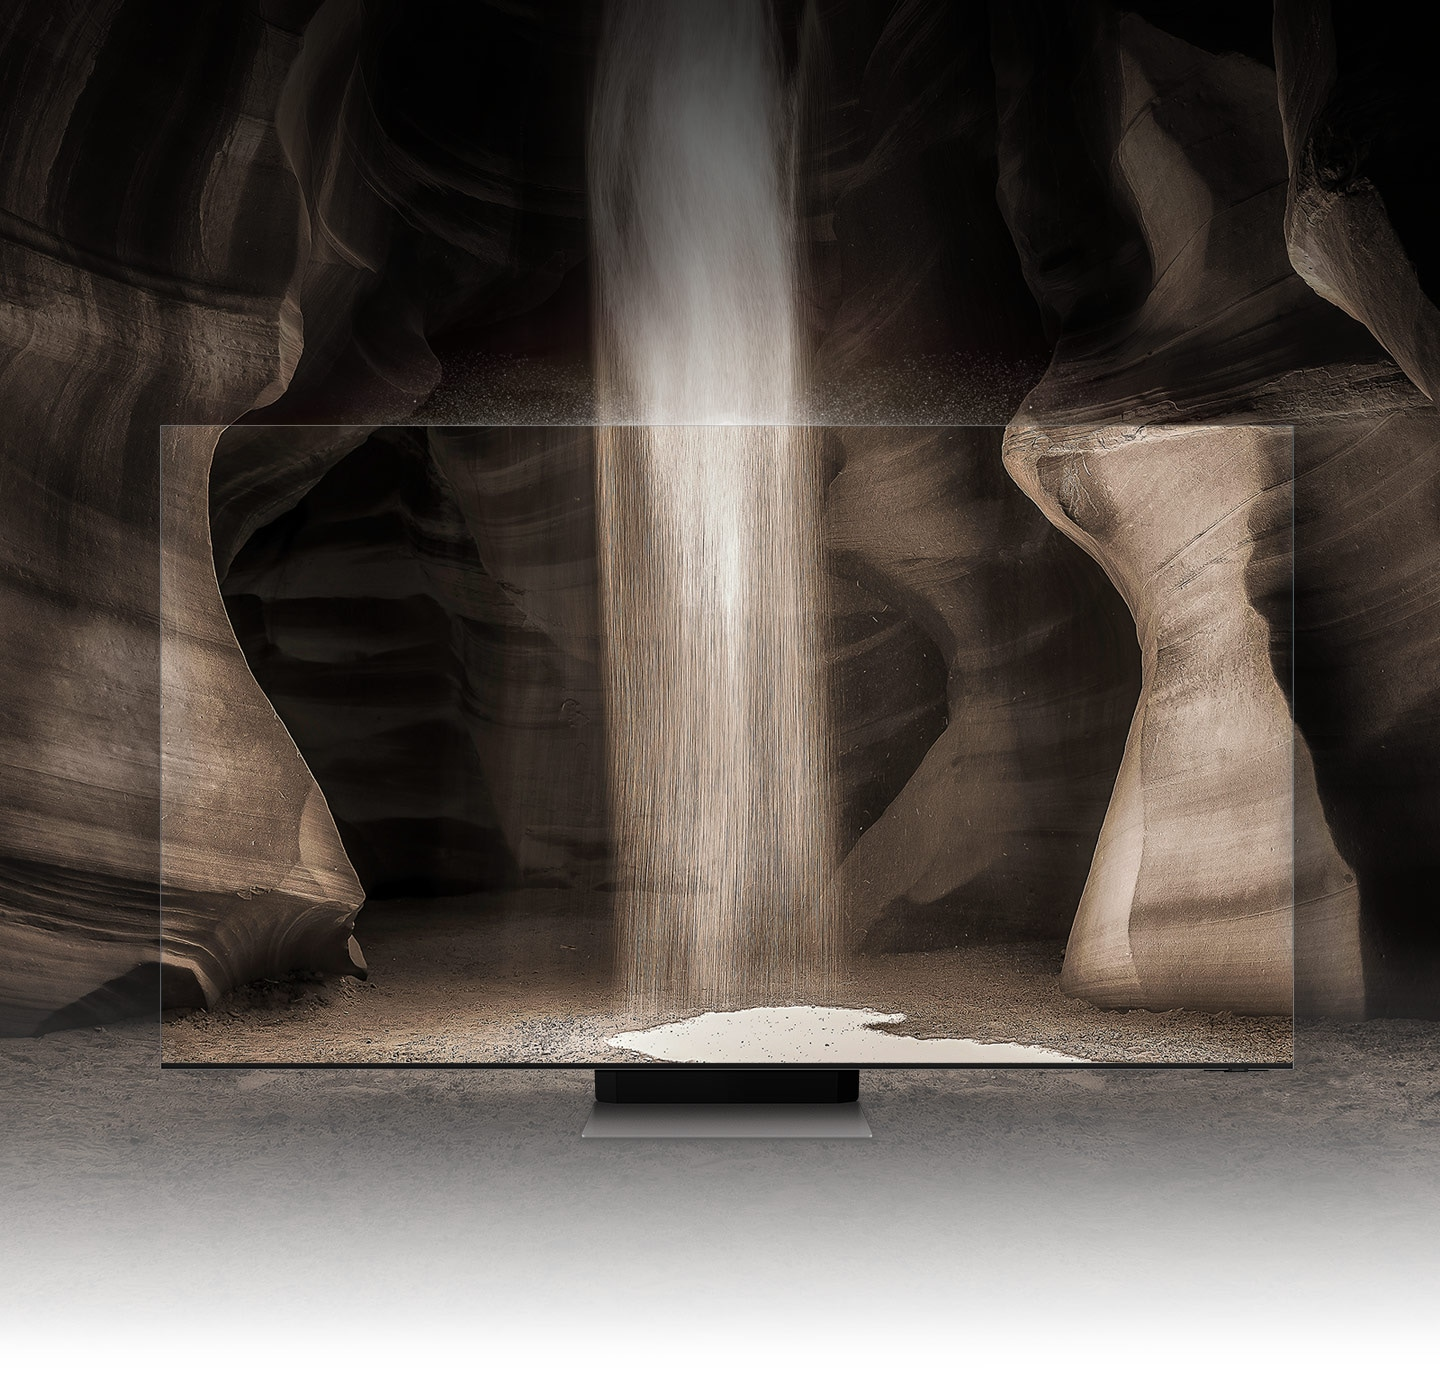 Somewhere in the cave, a QLED TV is placed, and sand falls from above. The edges of QLED TVs are so thin that it seems like there is no TV.